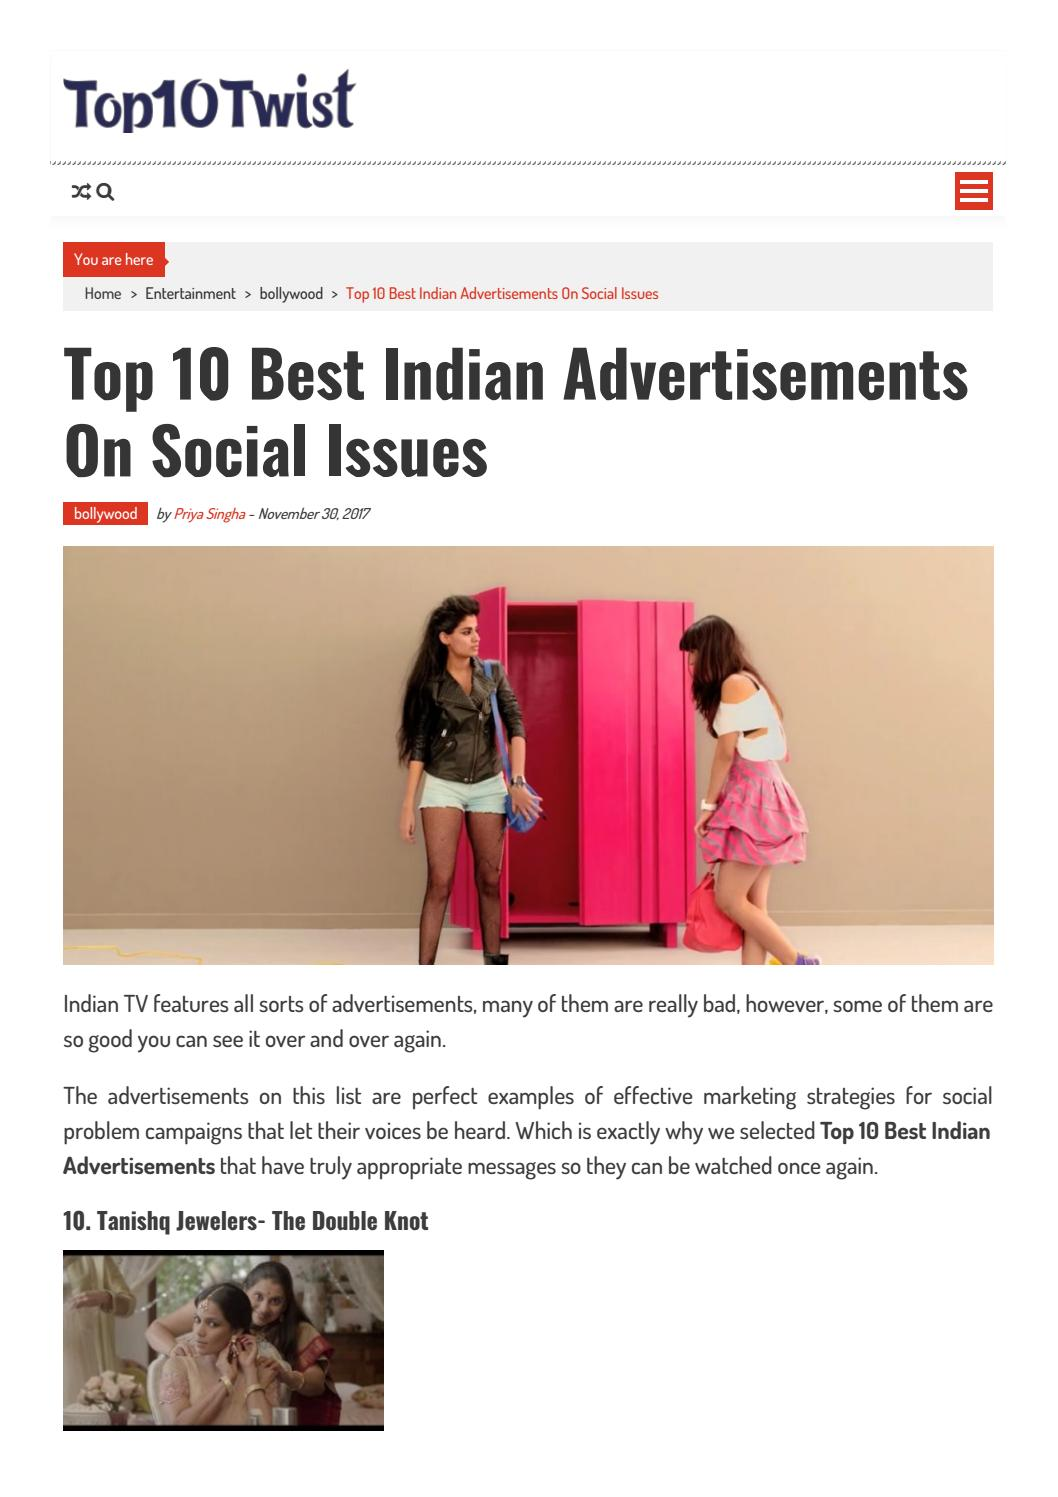 Top 10 best indian advertisements on social issues by